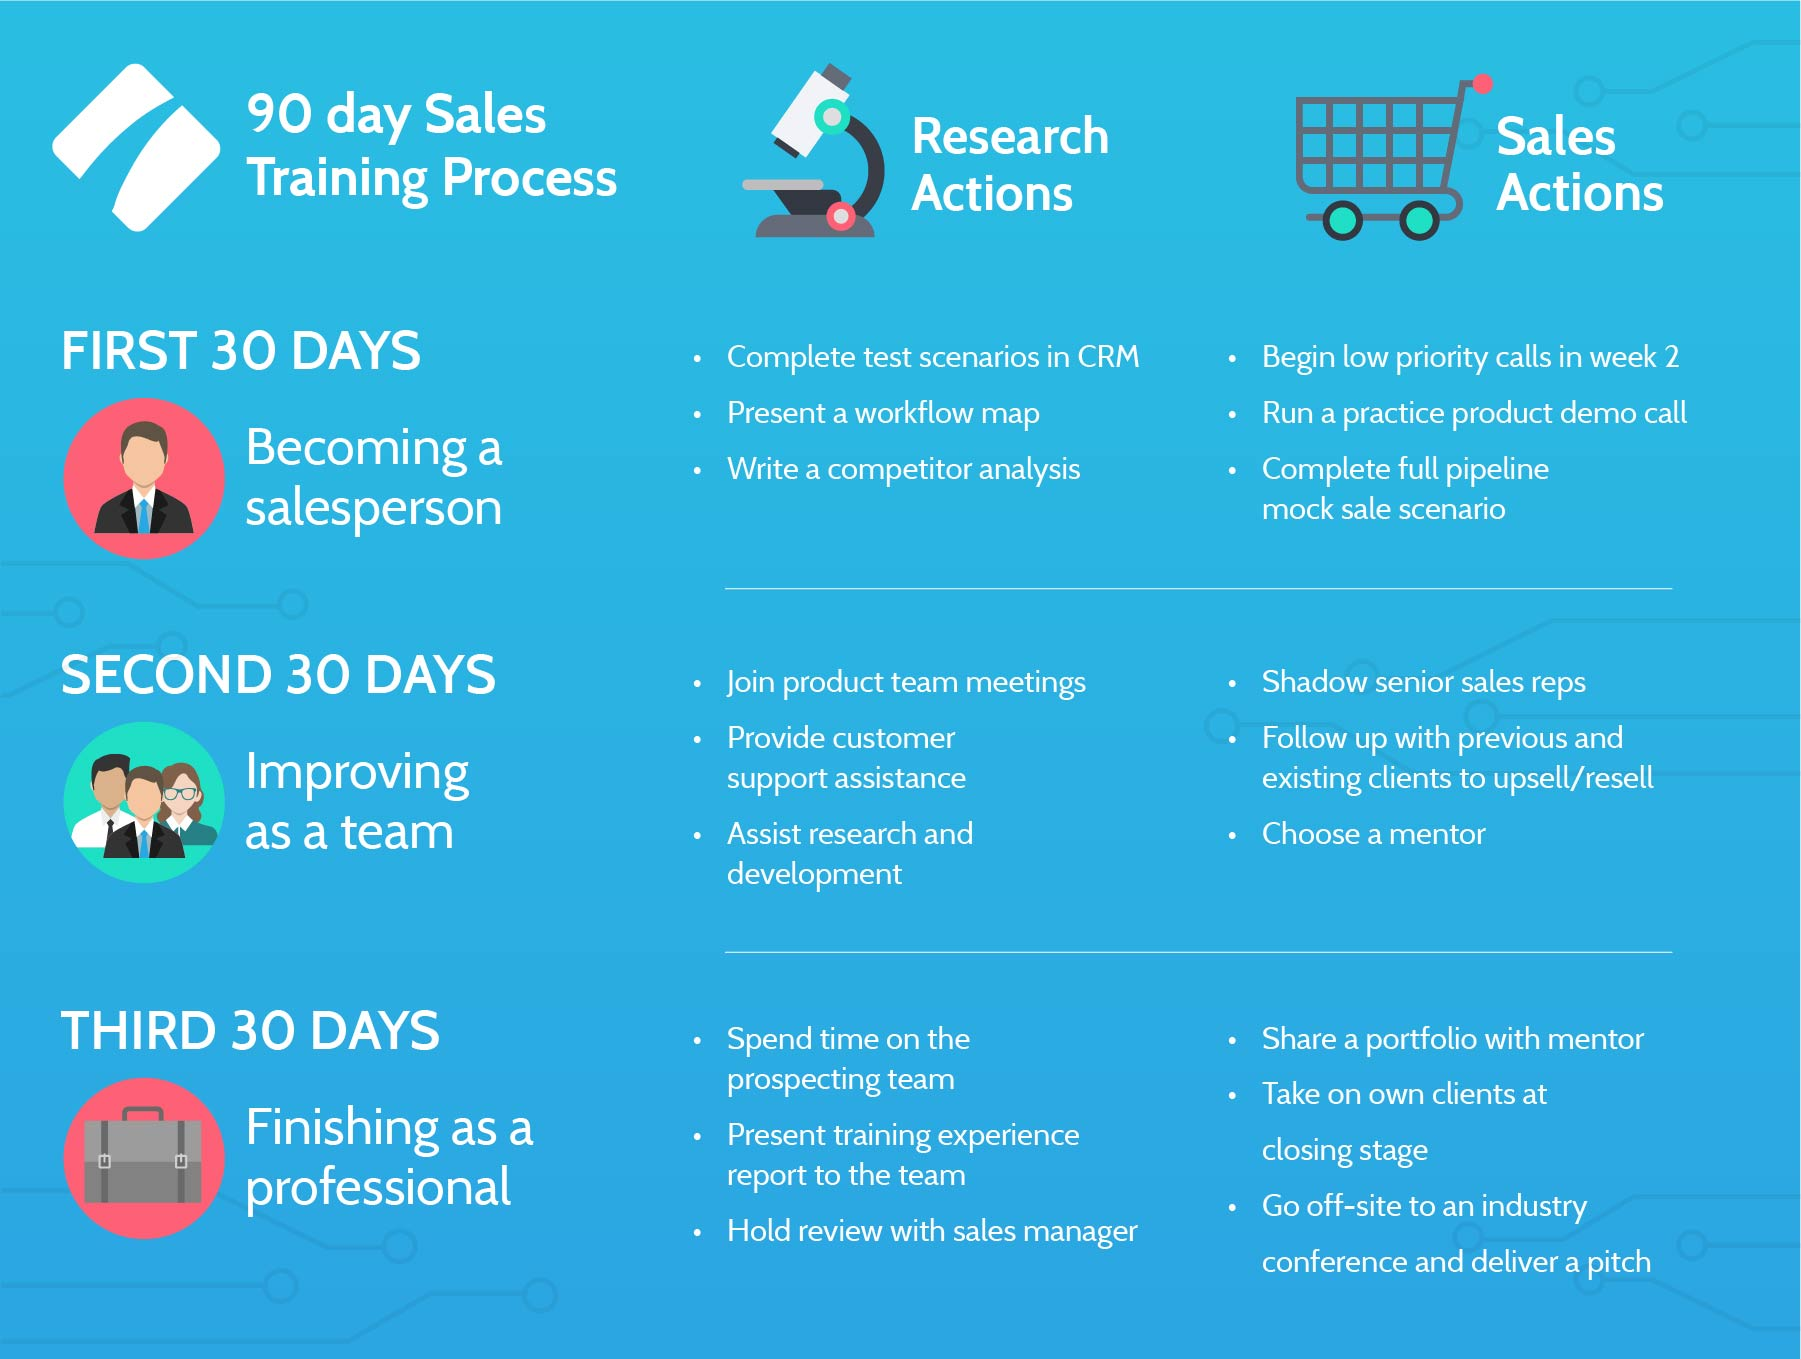 sales_training_process_infographic